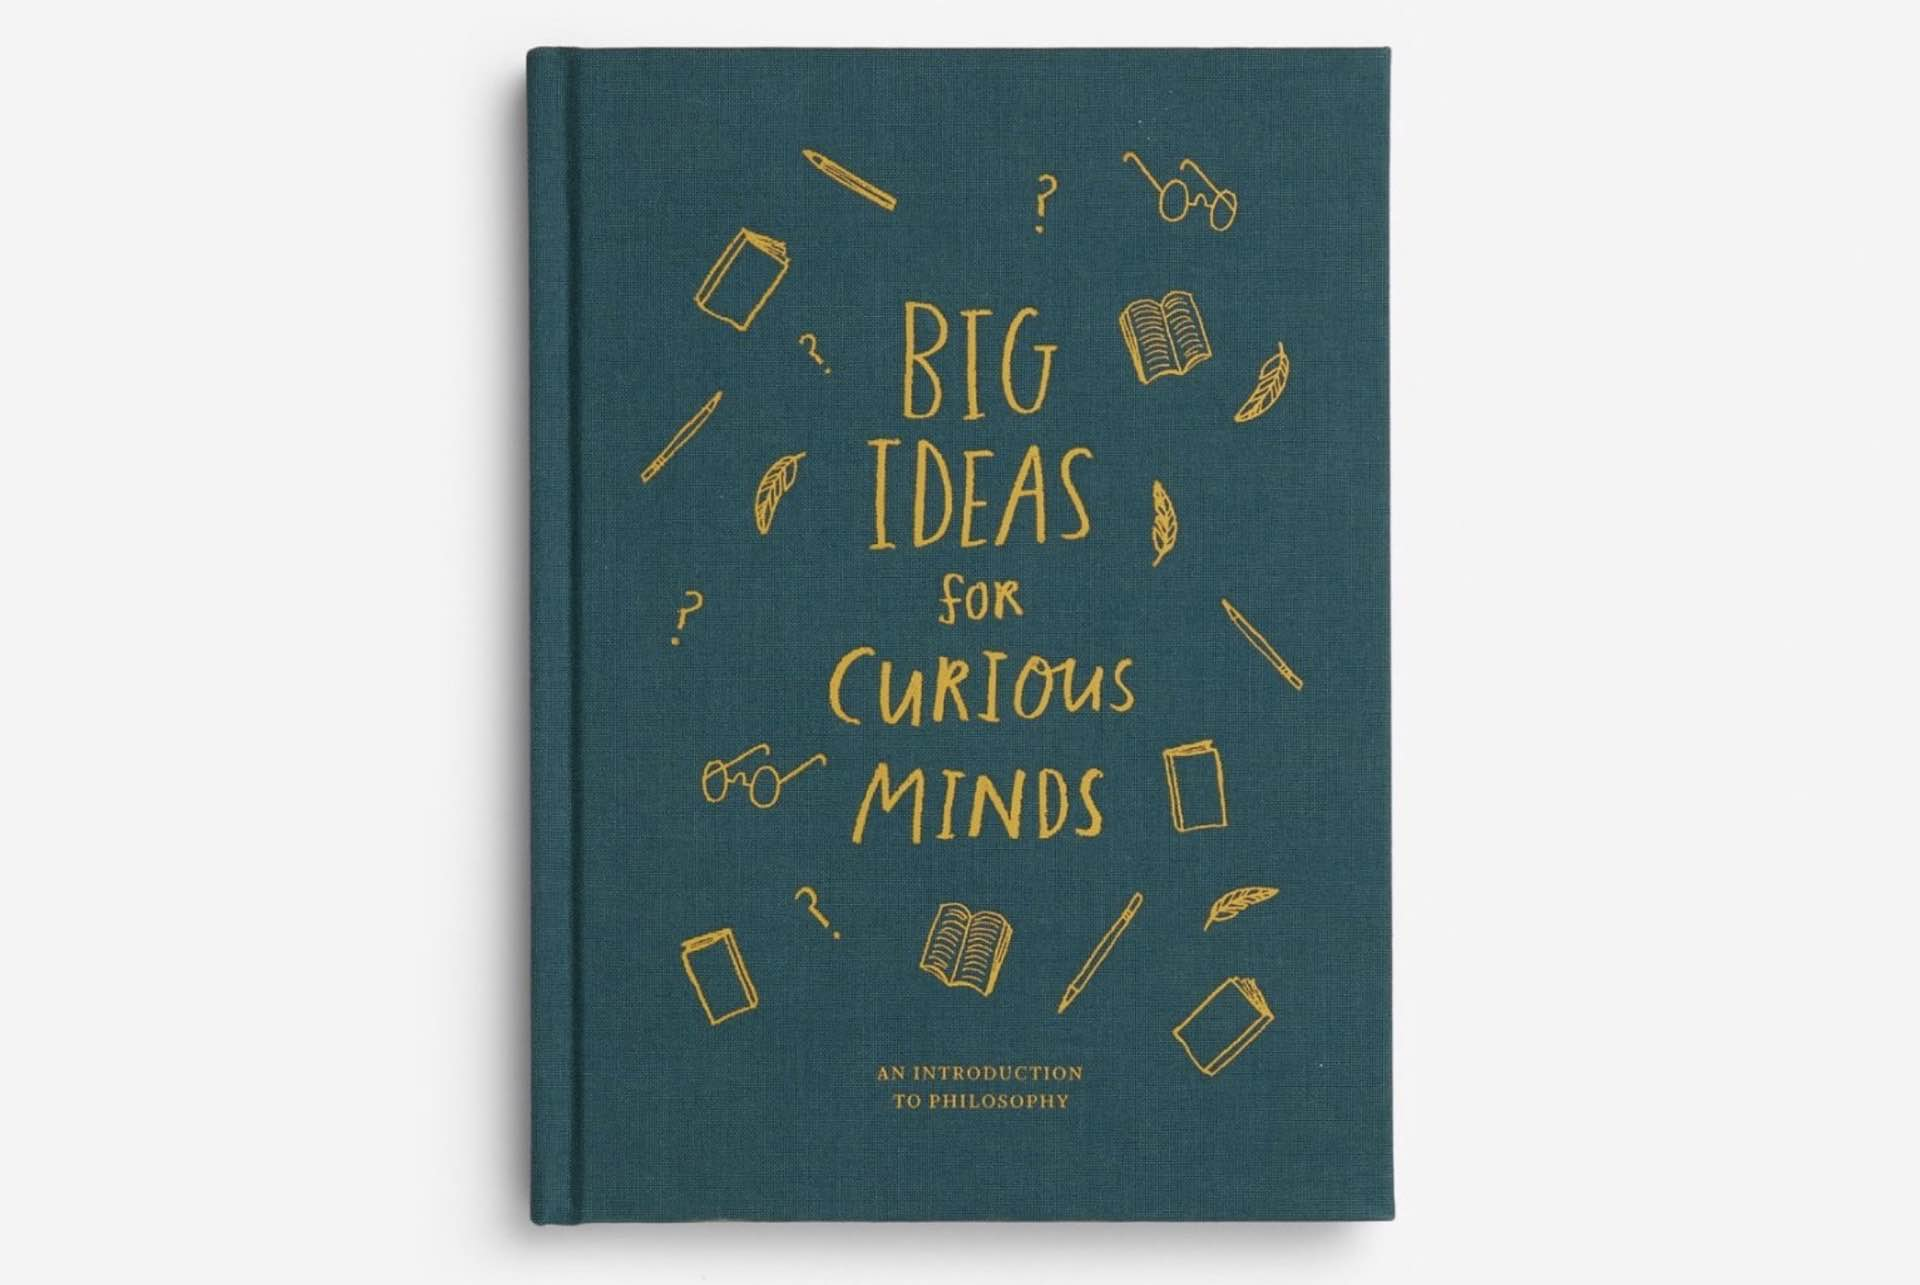 big-ideas-for-curious-minds-by-the-school-of-life